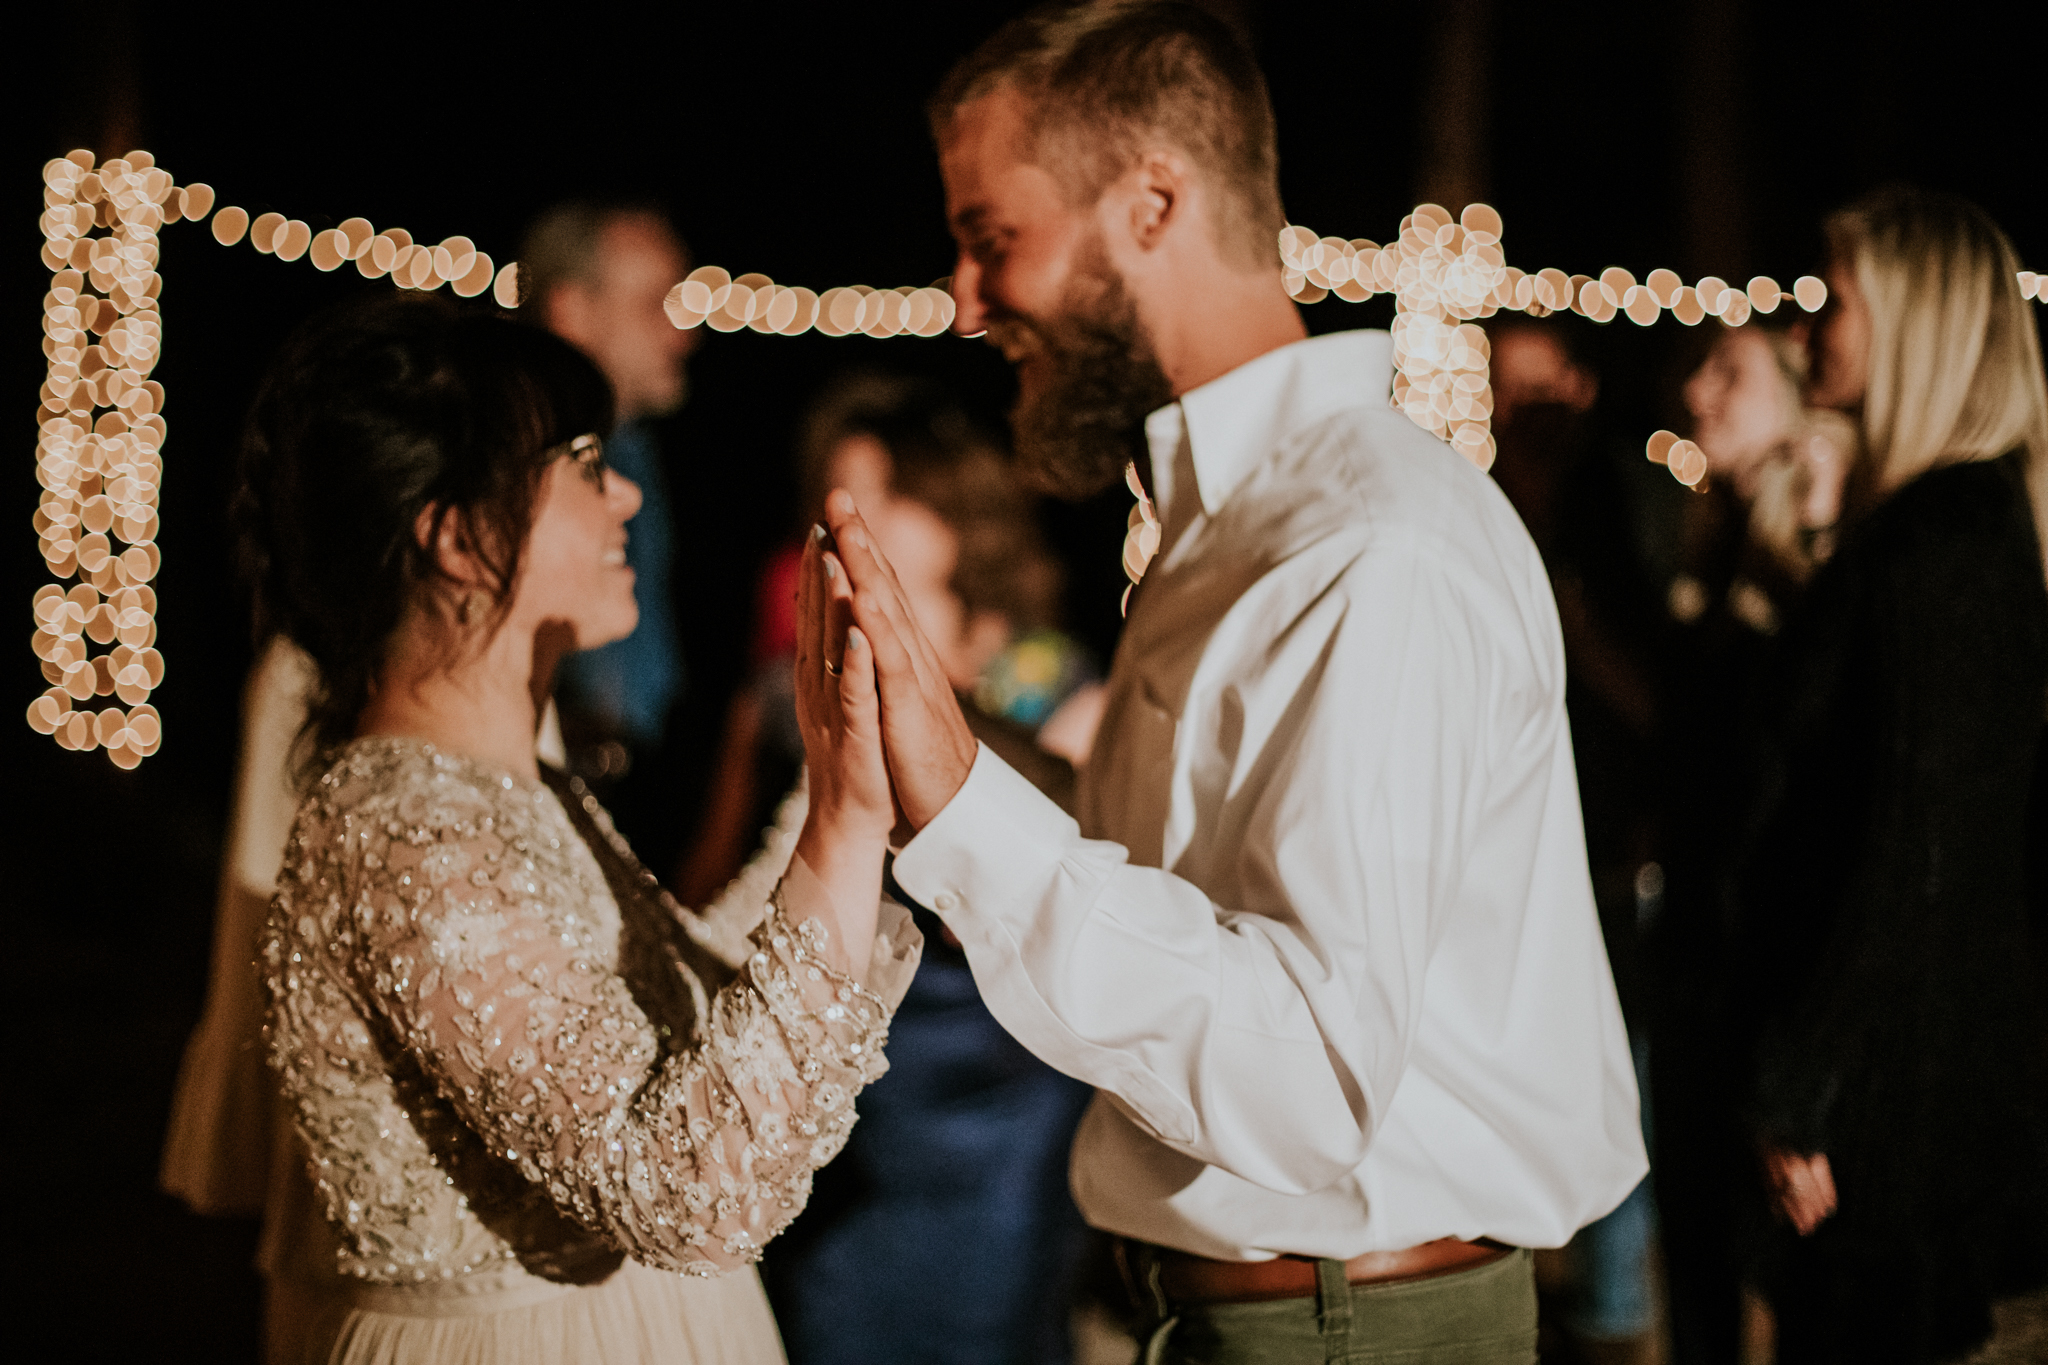 Taos New Mexico Elopement Photographer - tented backyard reception - dancing